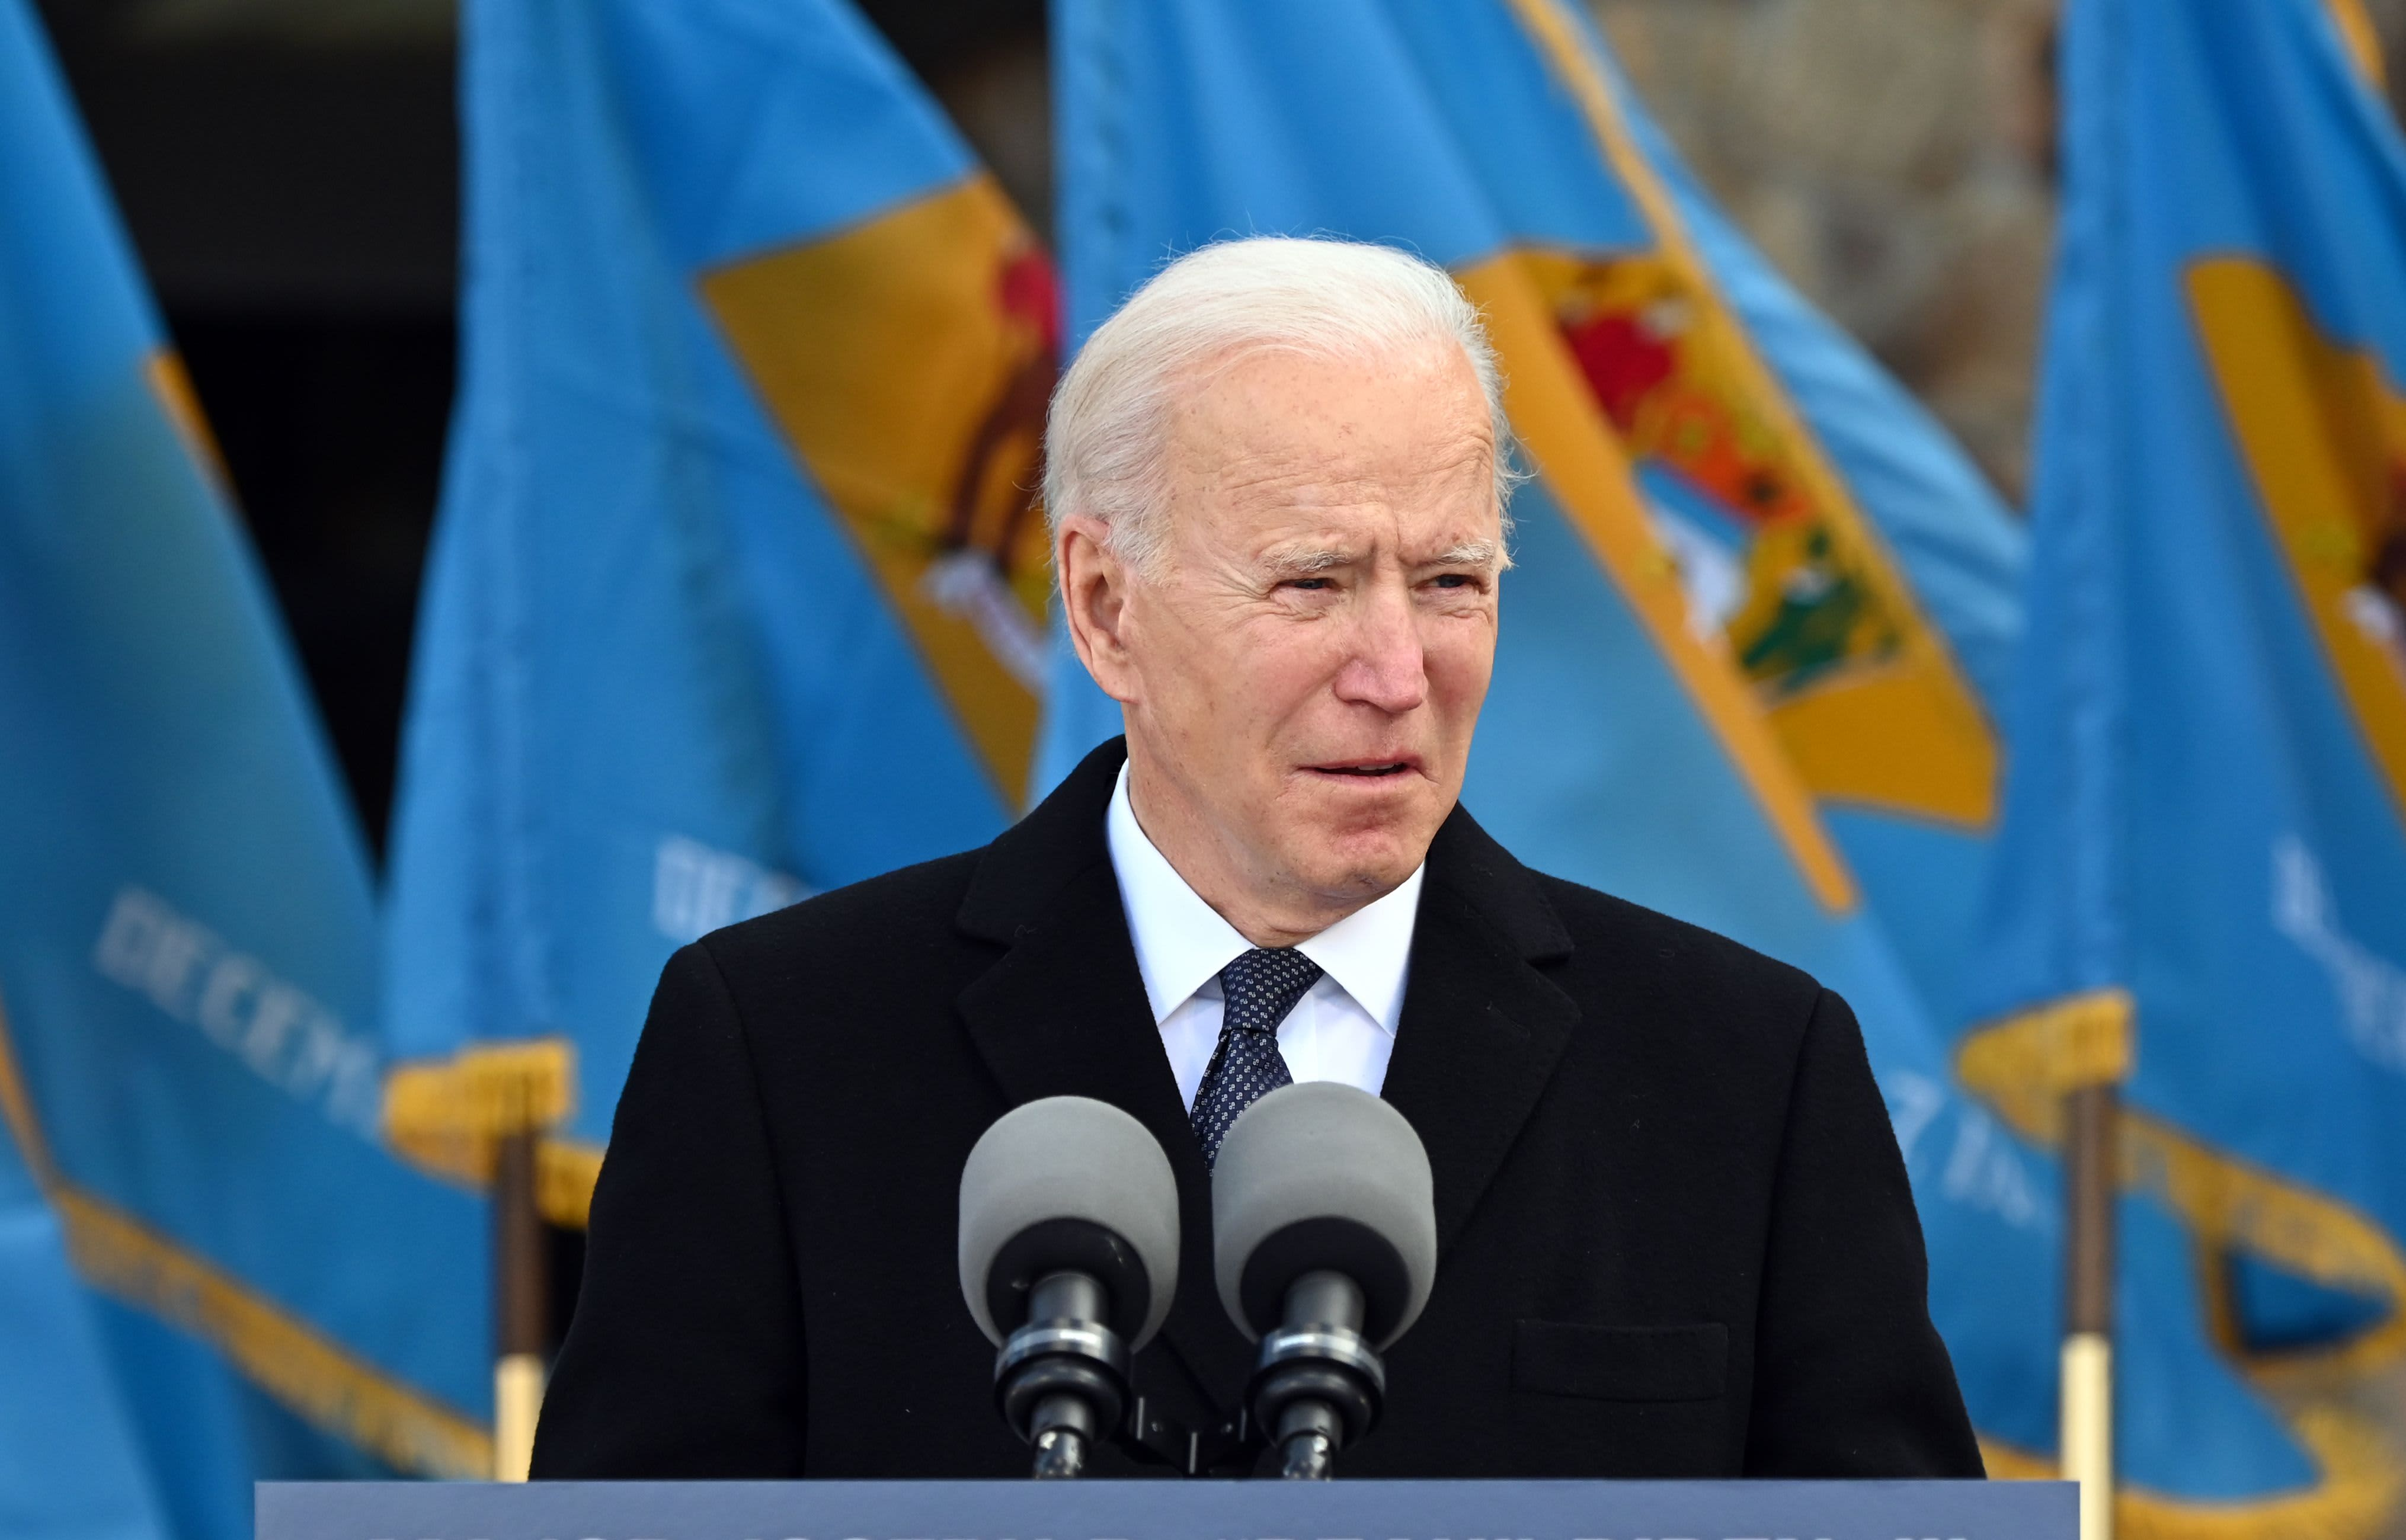 Biden plans to extend payment pause for student loan borrowers until October 2021